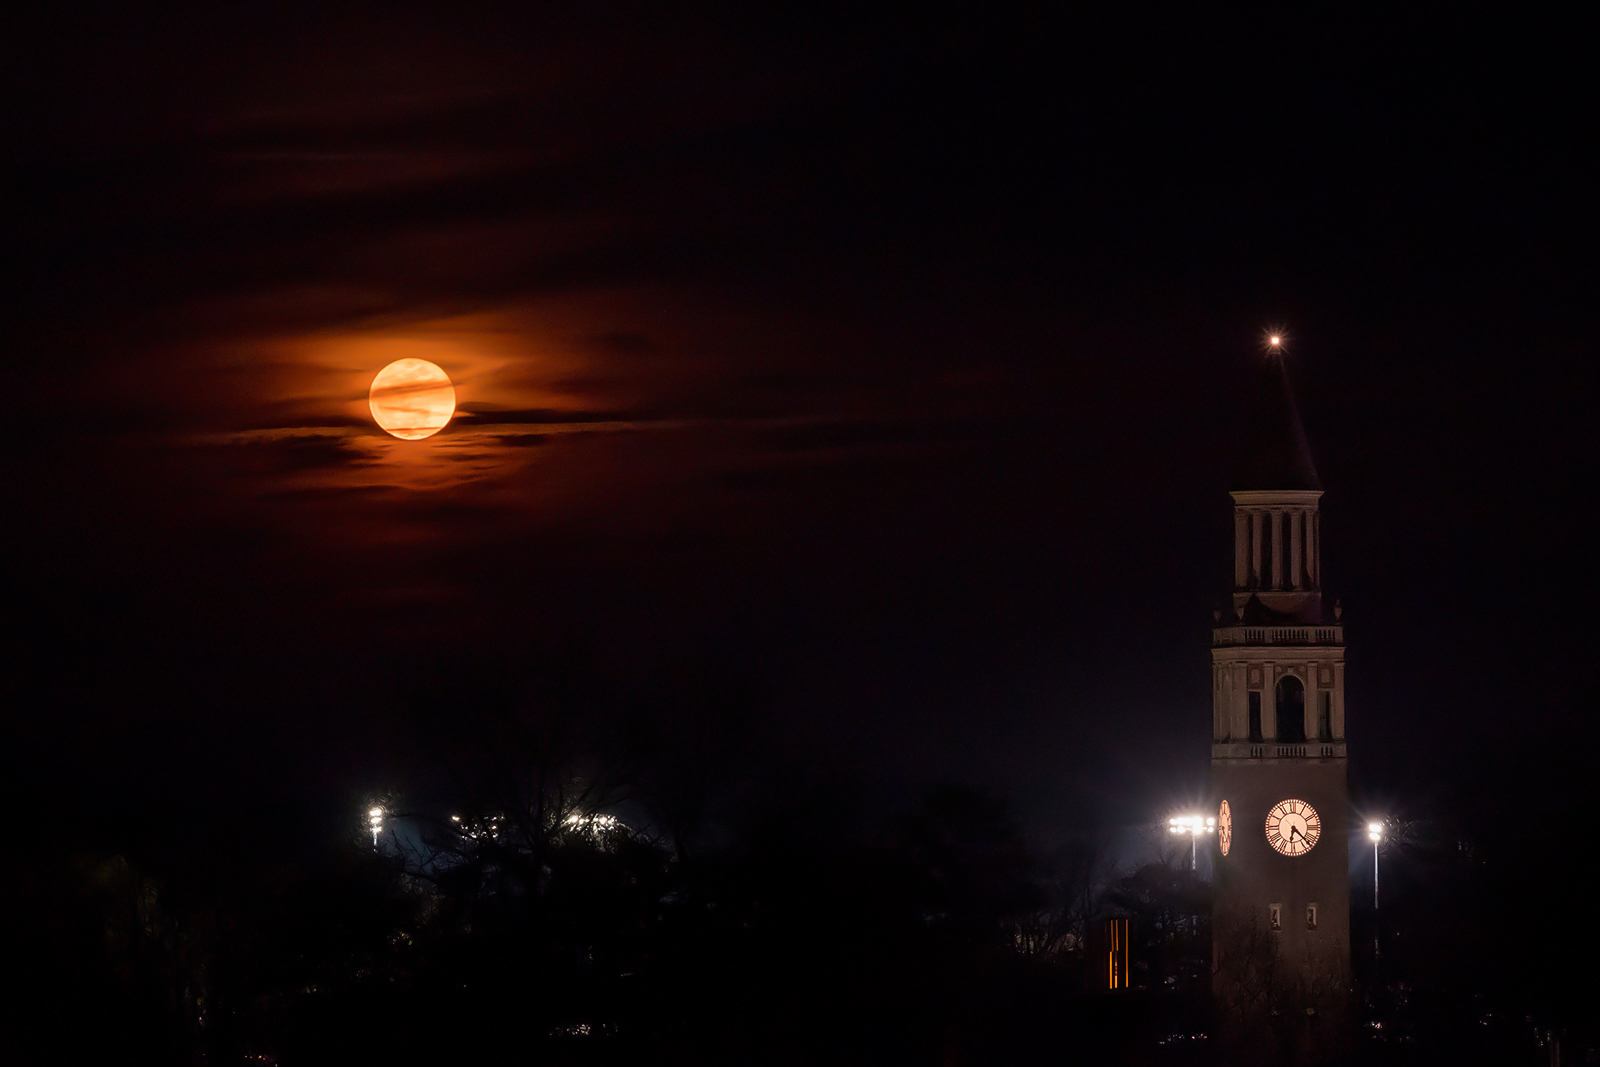 The Bell Tower with a full moon.